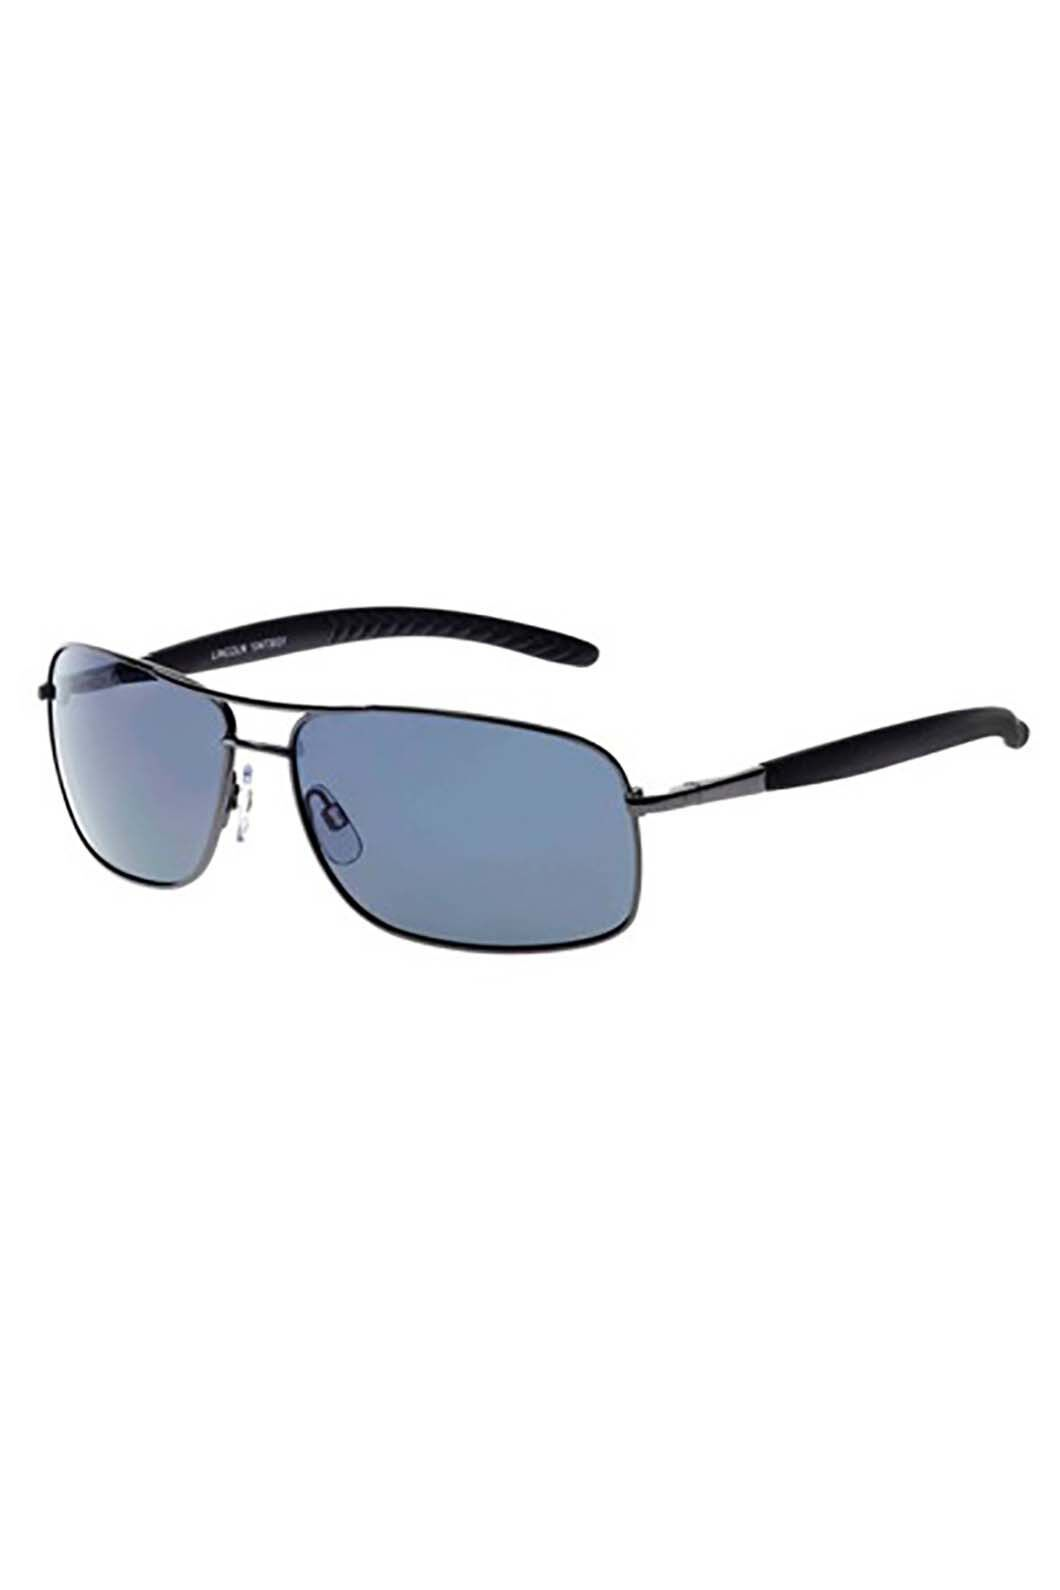 Cancer Council Unisex Lincoln Polarised Sunglasses, Gunmetal, hi-res